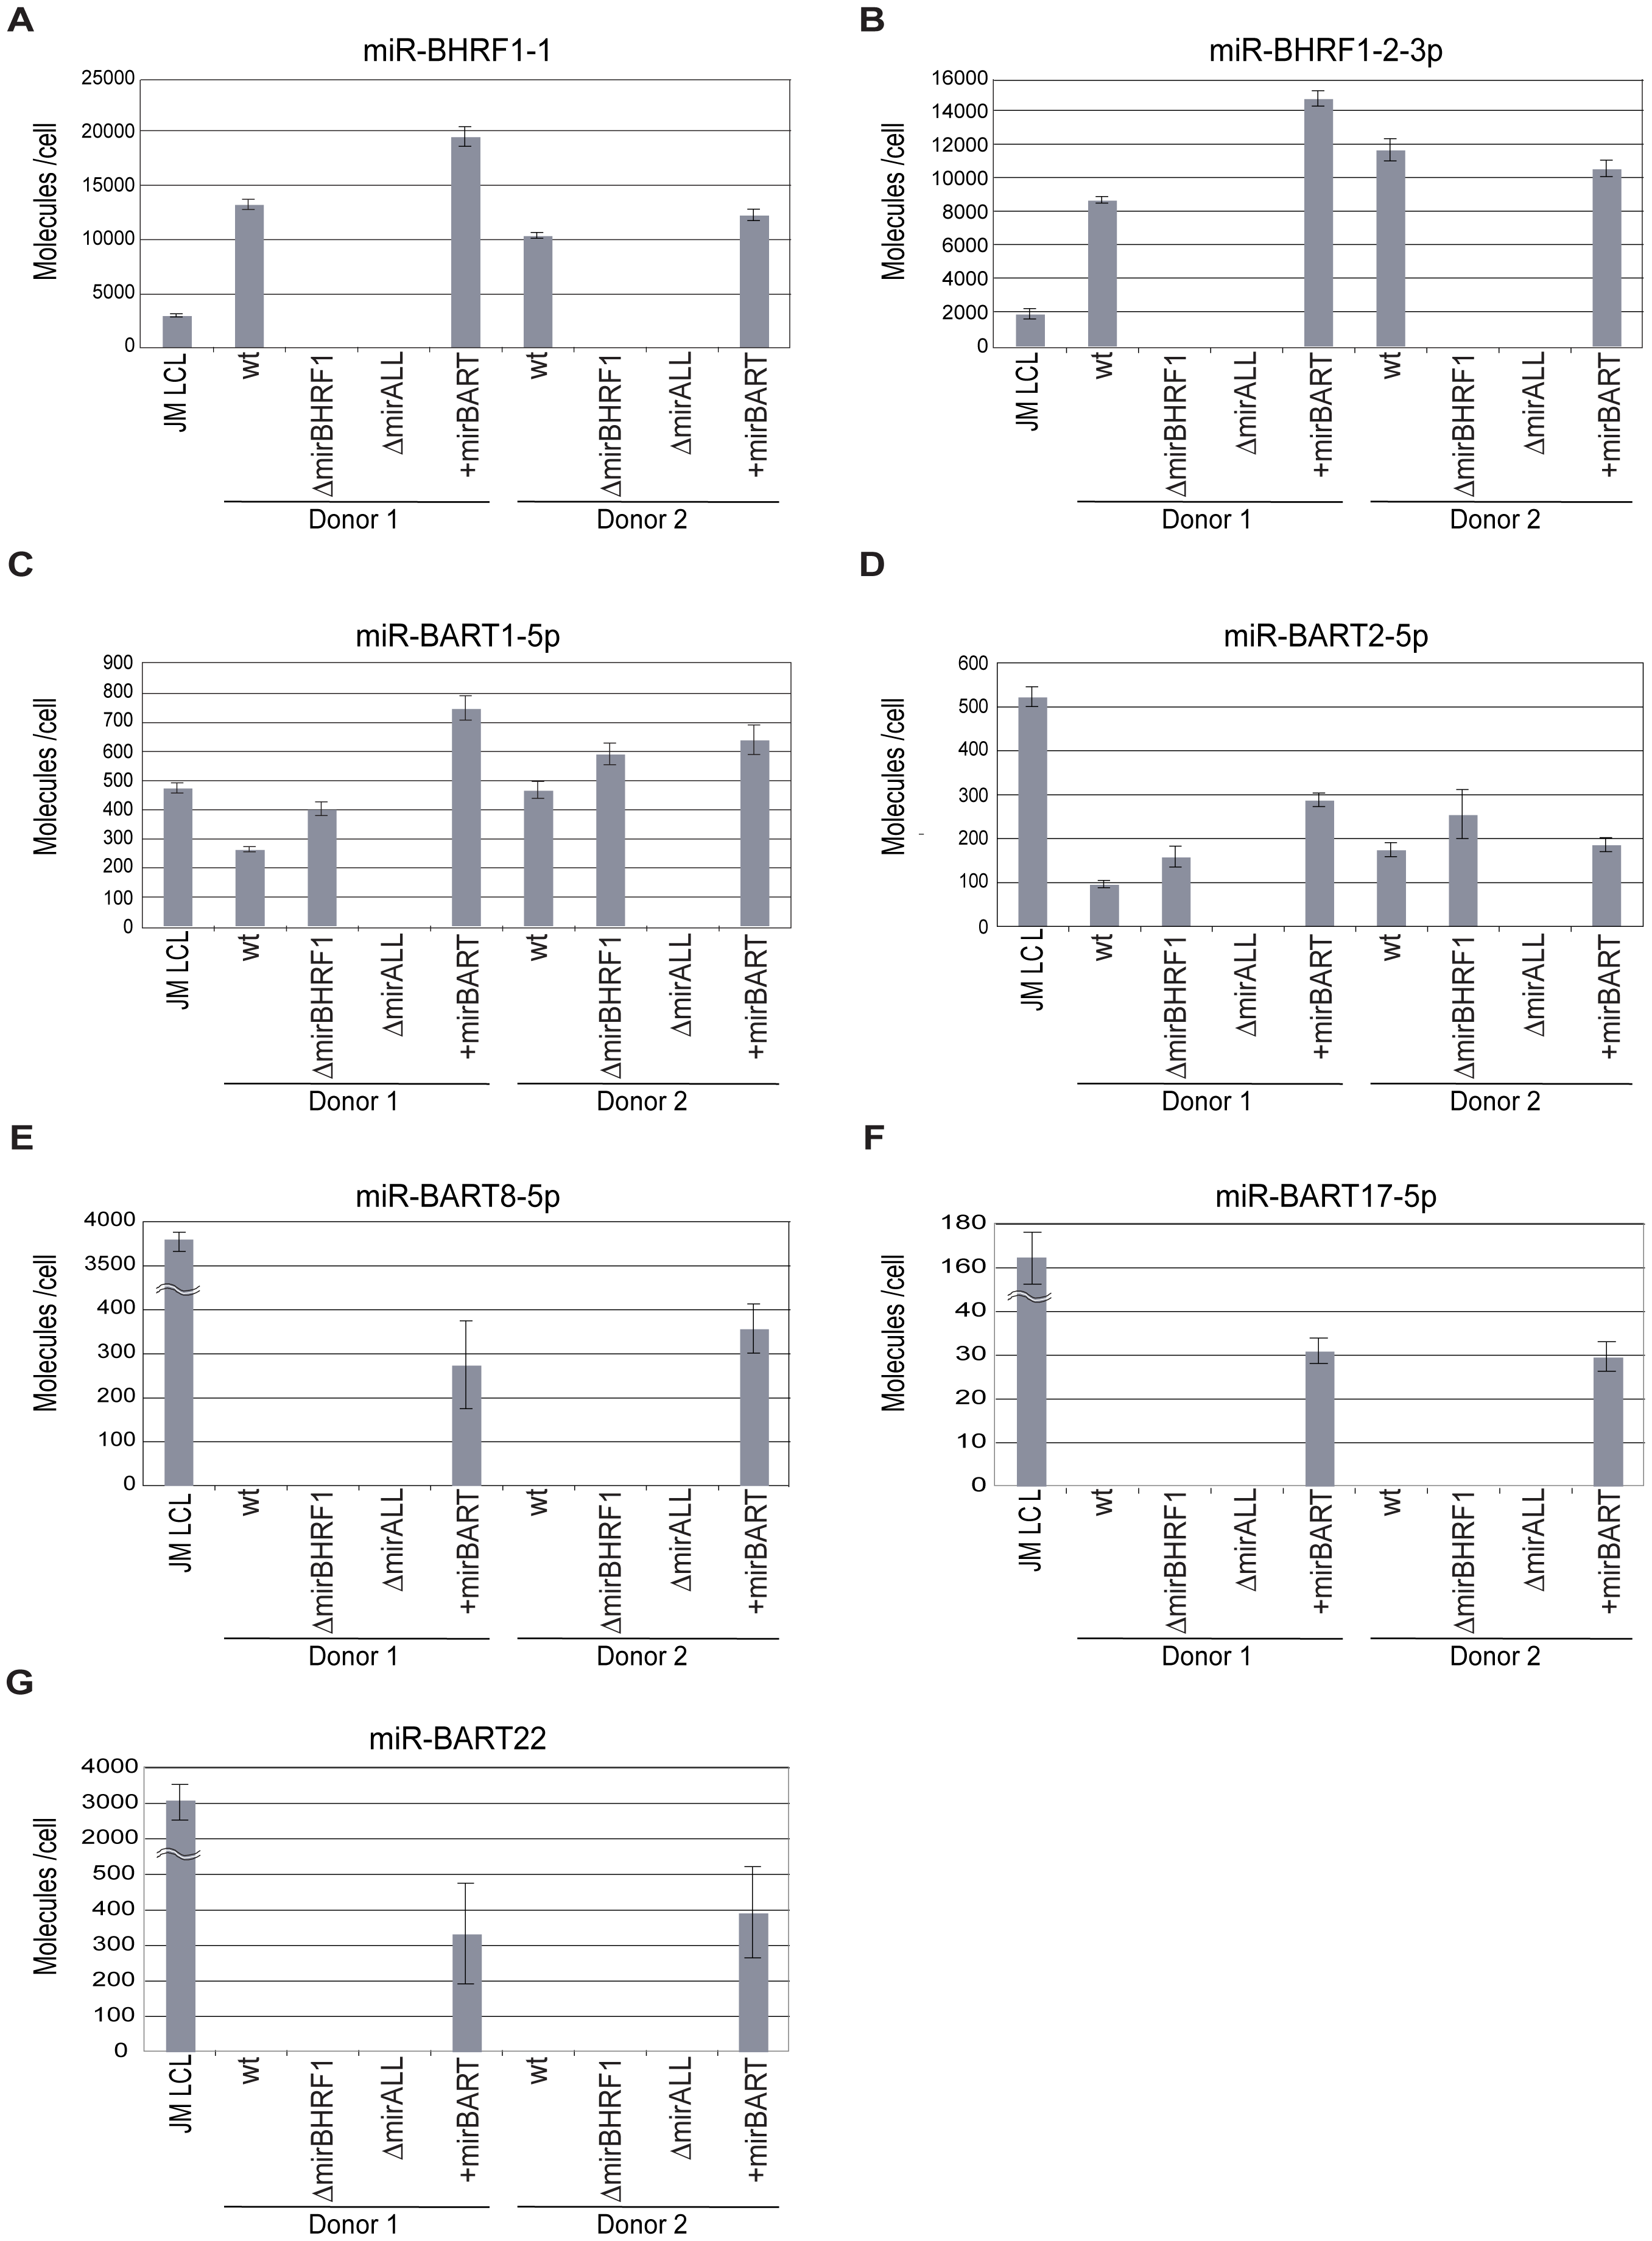 Absolute quantification of EBV-encoded miRNAs in established LCLs infected with prototype 2089 or miRNA-mutant EBVs.